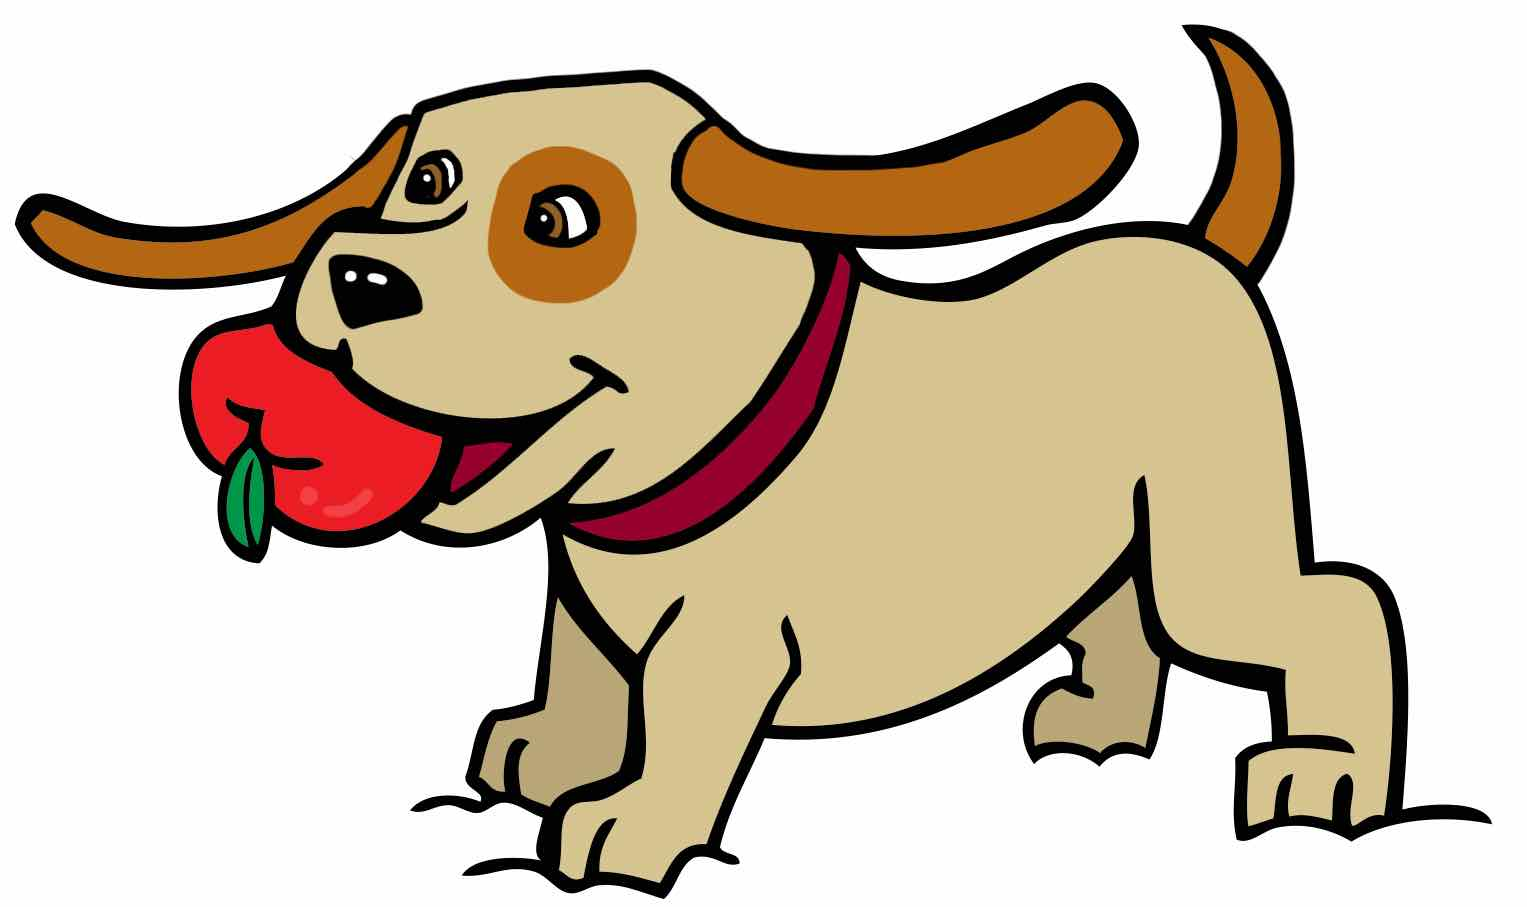 Cinnamon the dog with a red apple in his mouth